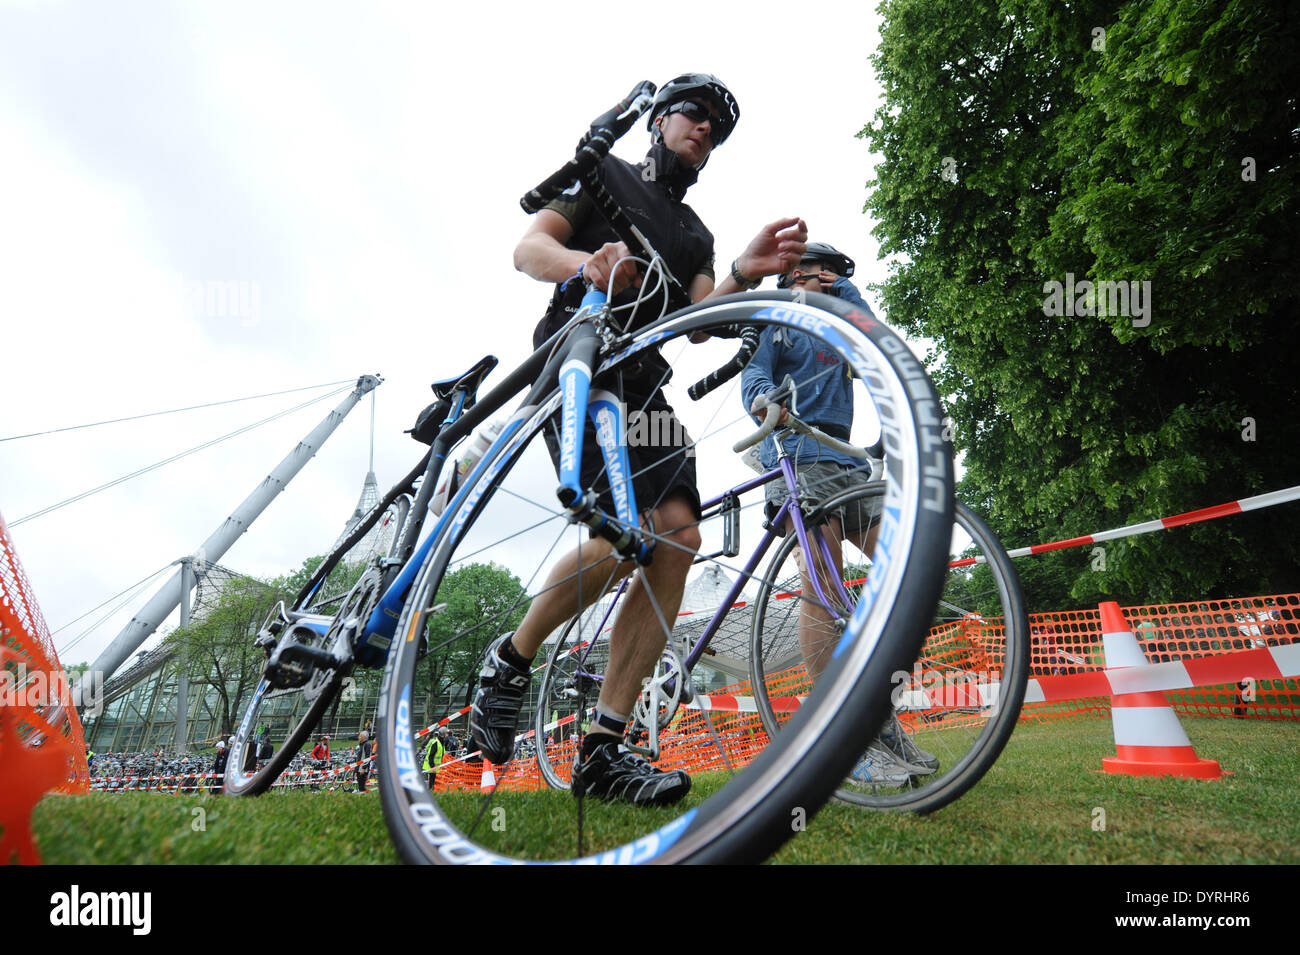 The 9th Munich City Triathlon in the Olympic Park, 201 - Stock Image